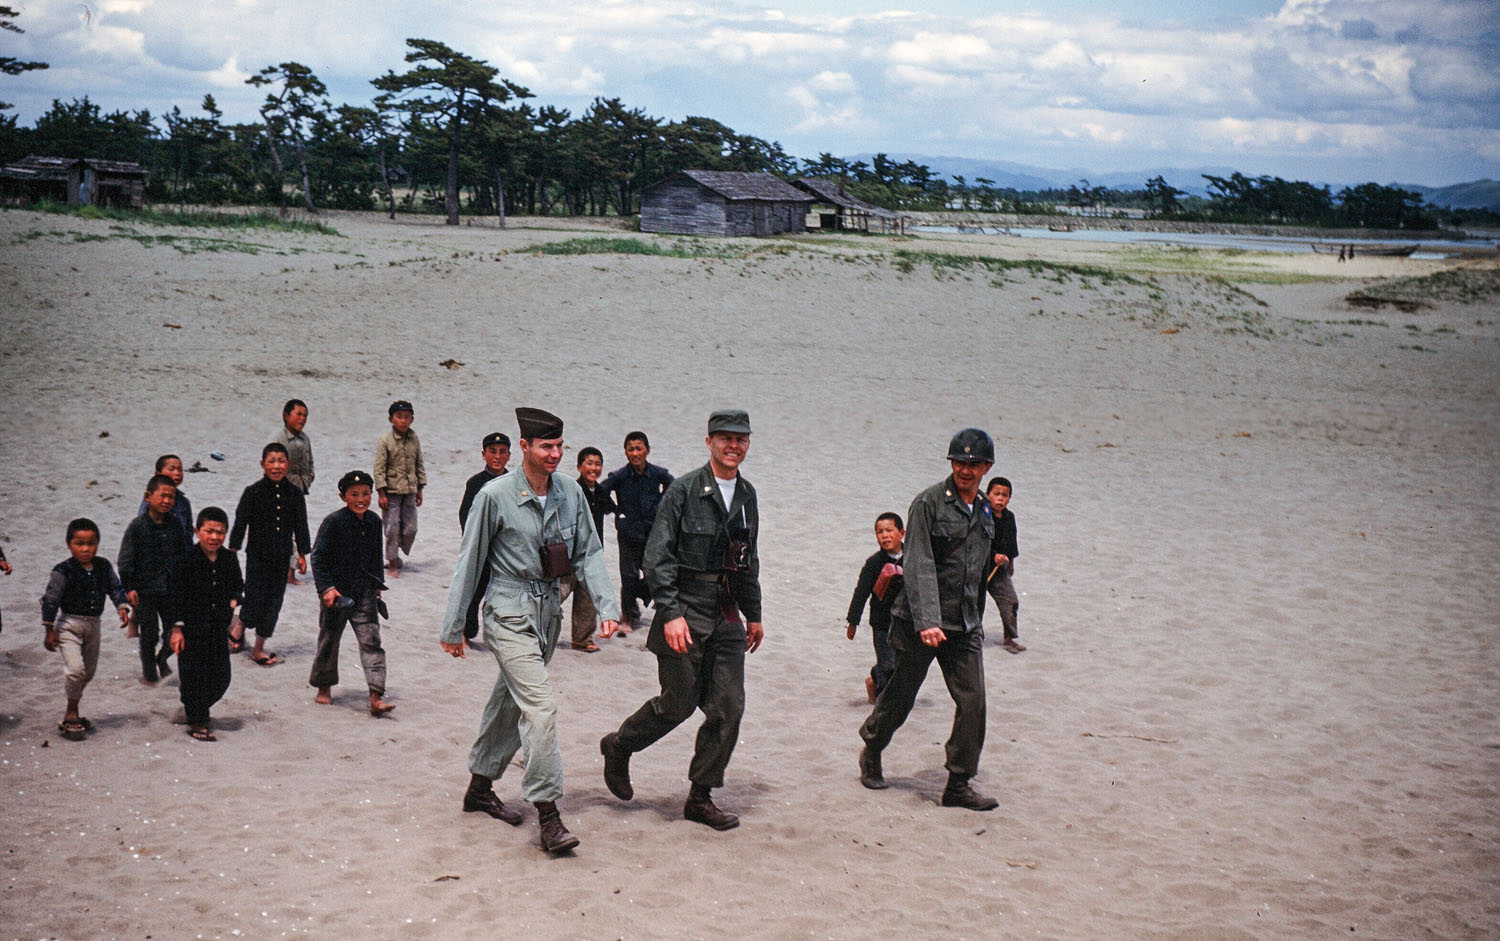 56- American Soldiers Being Followed by Children